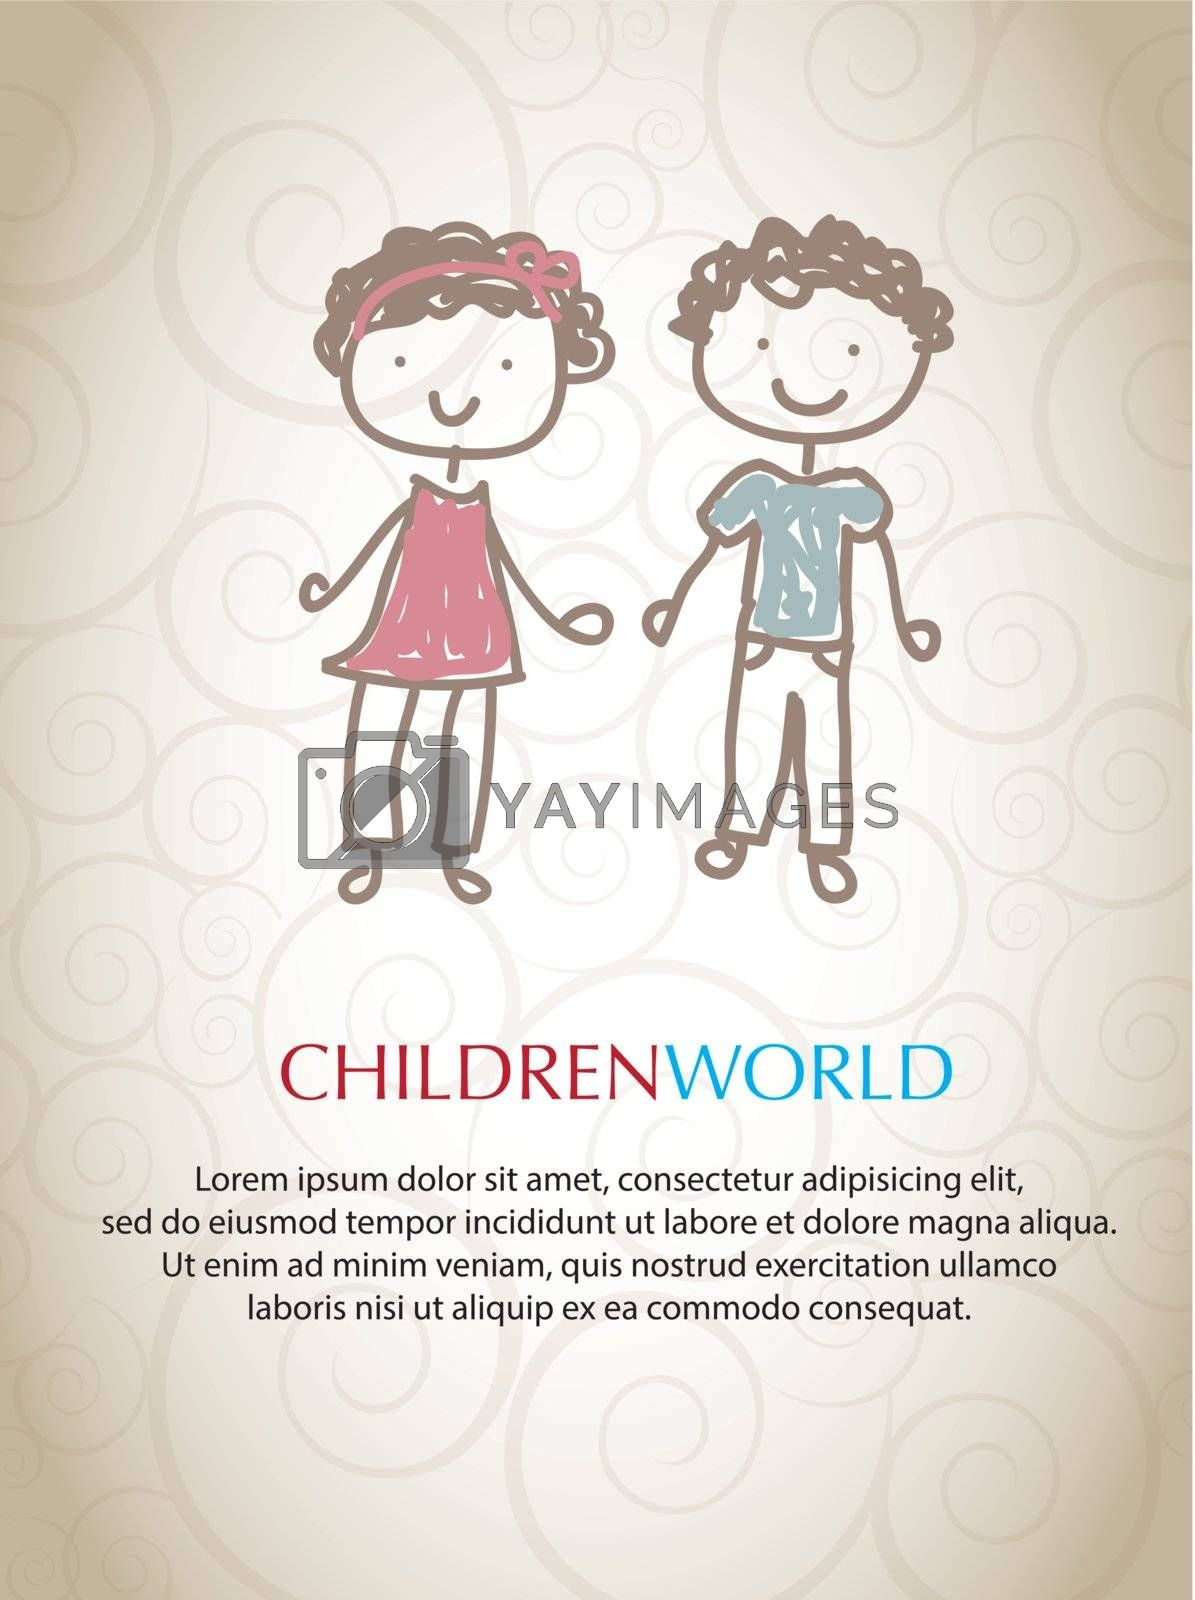 pair of children in friendship and brotherhood representing the world